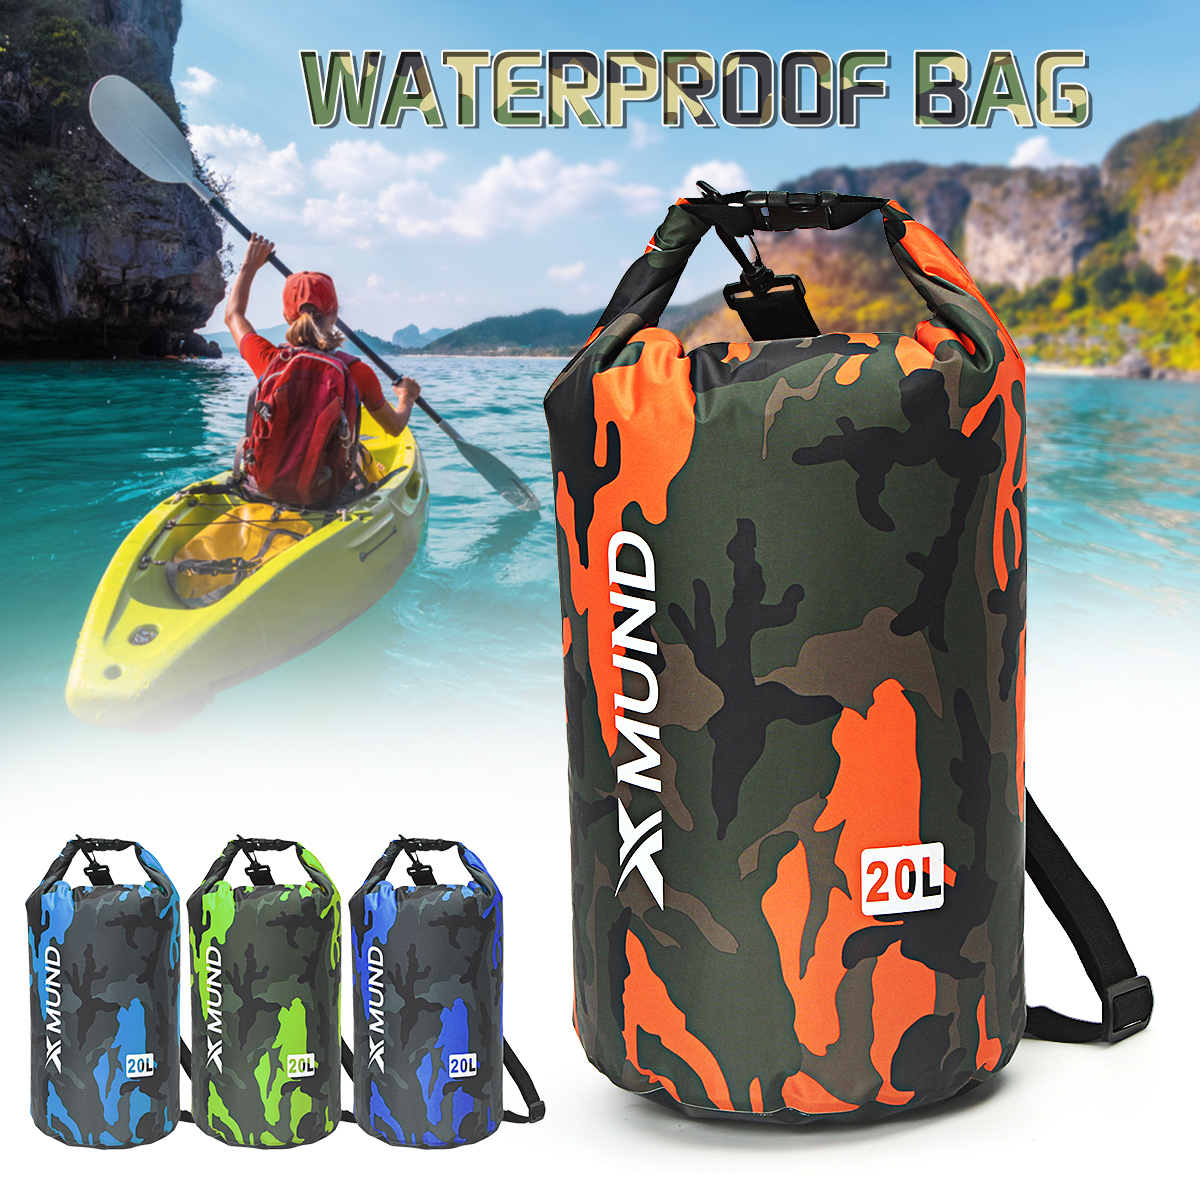 20L Sports Waterproof Dry Bag Backpack Pouch Floating Boating Kayaking Camping by